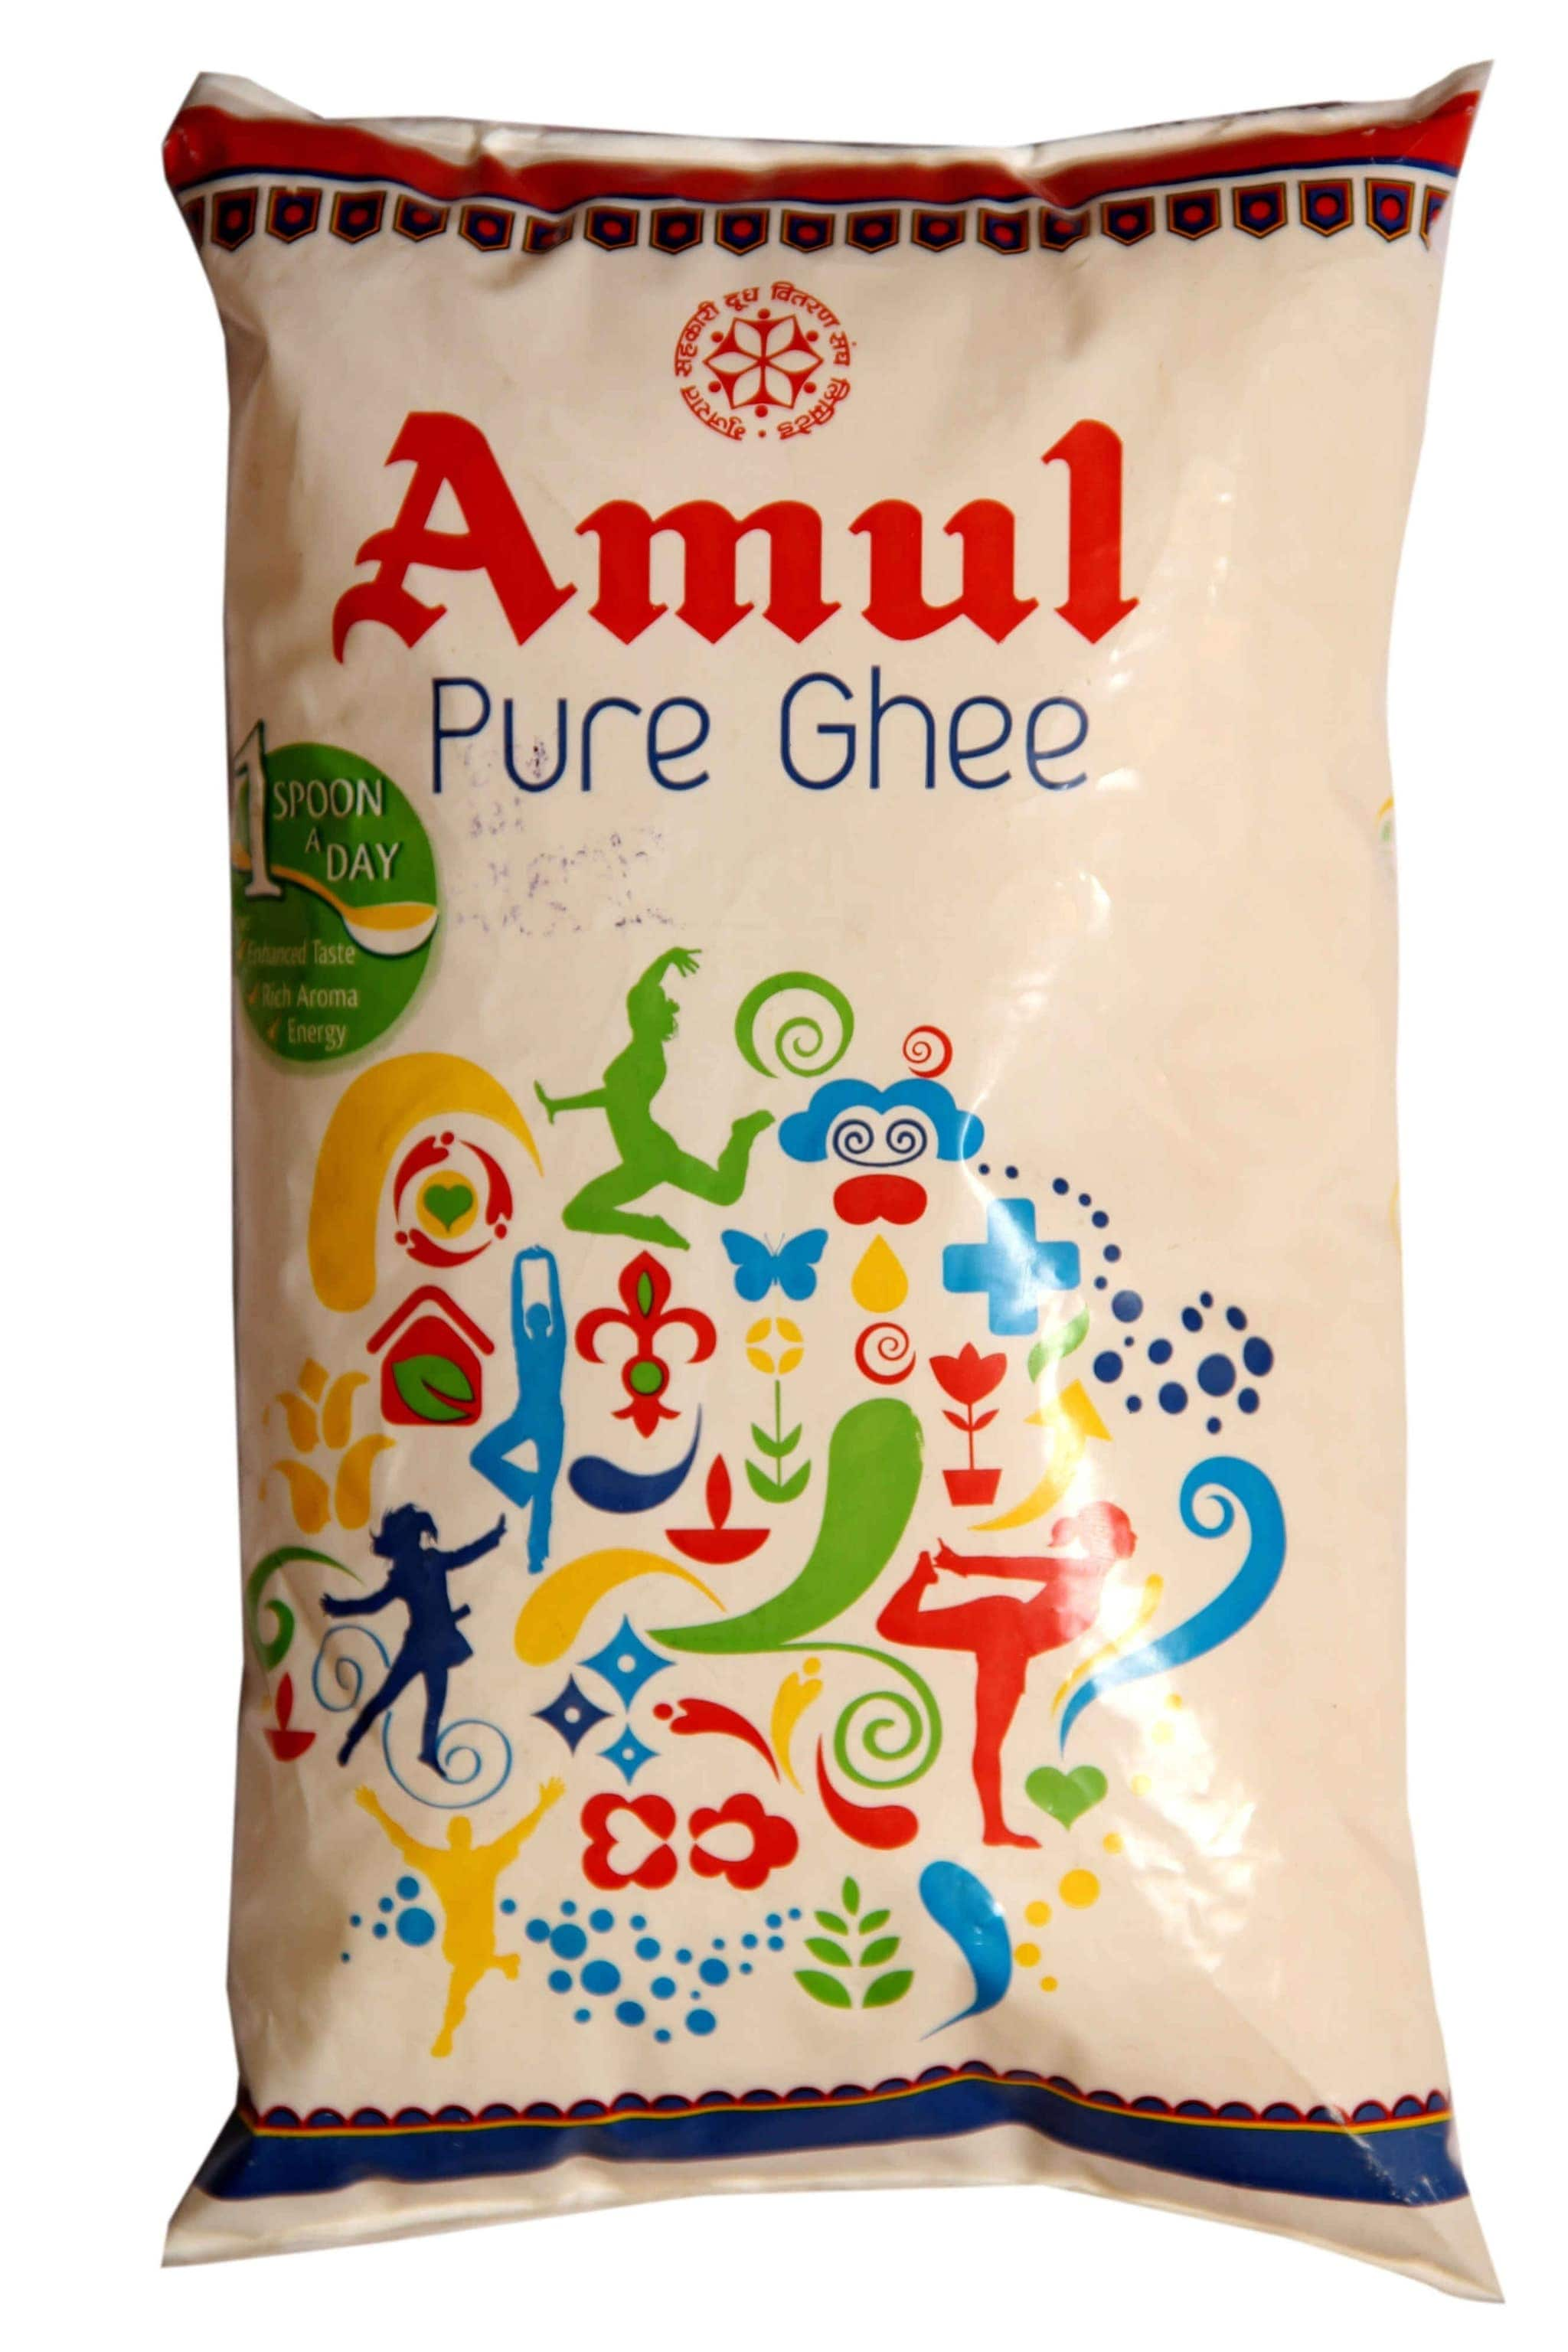 Amul Pure Ghee (Pouch) 1 Ltr